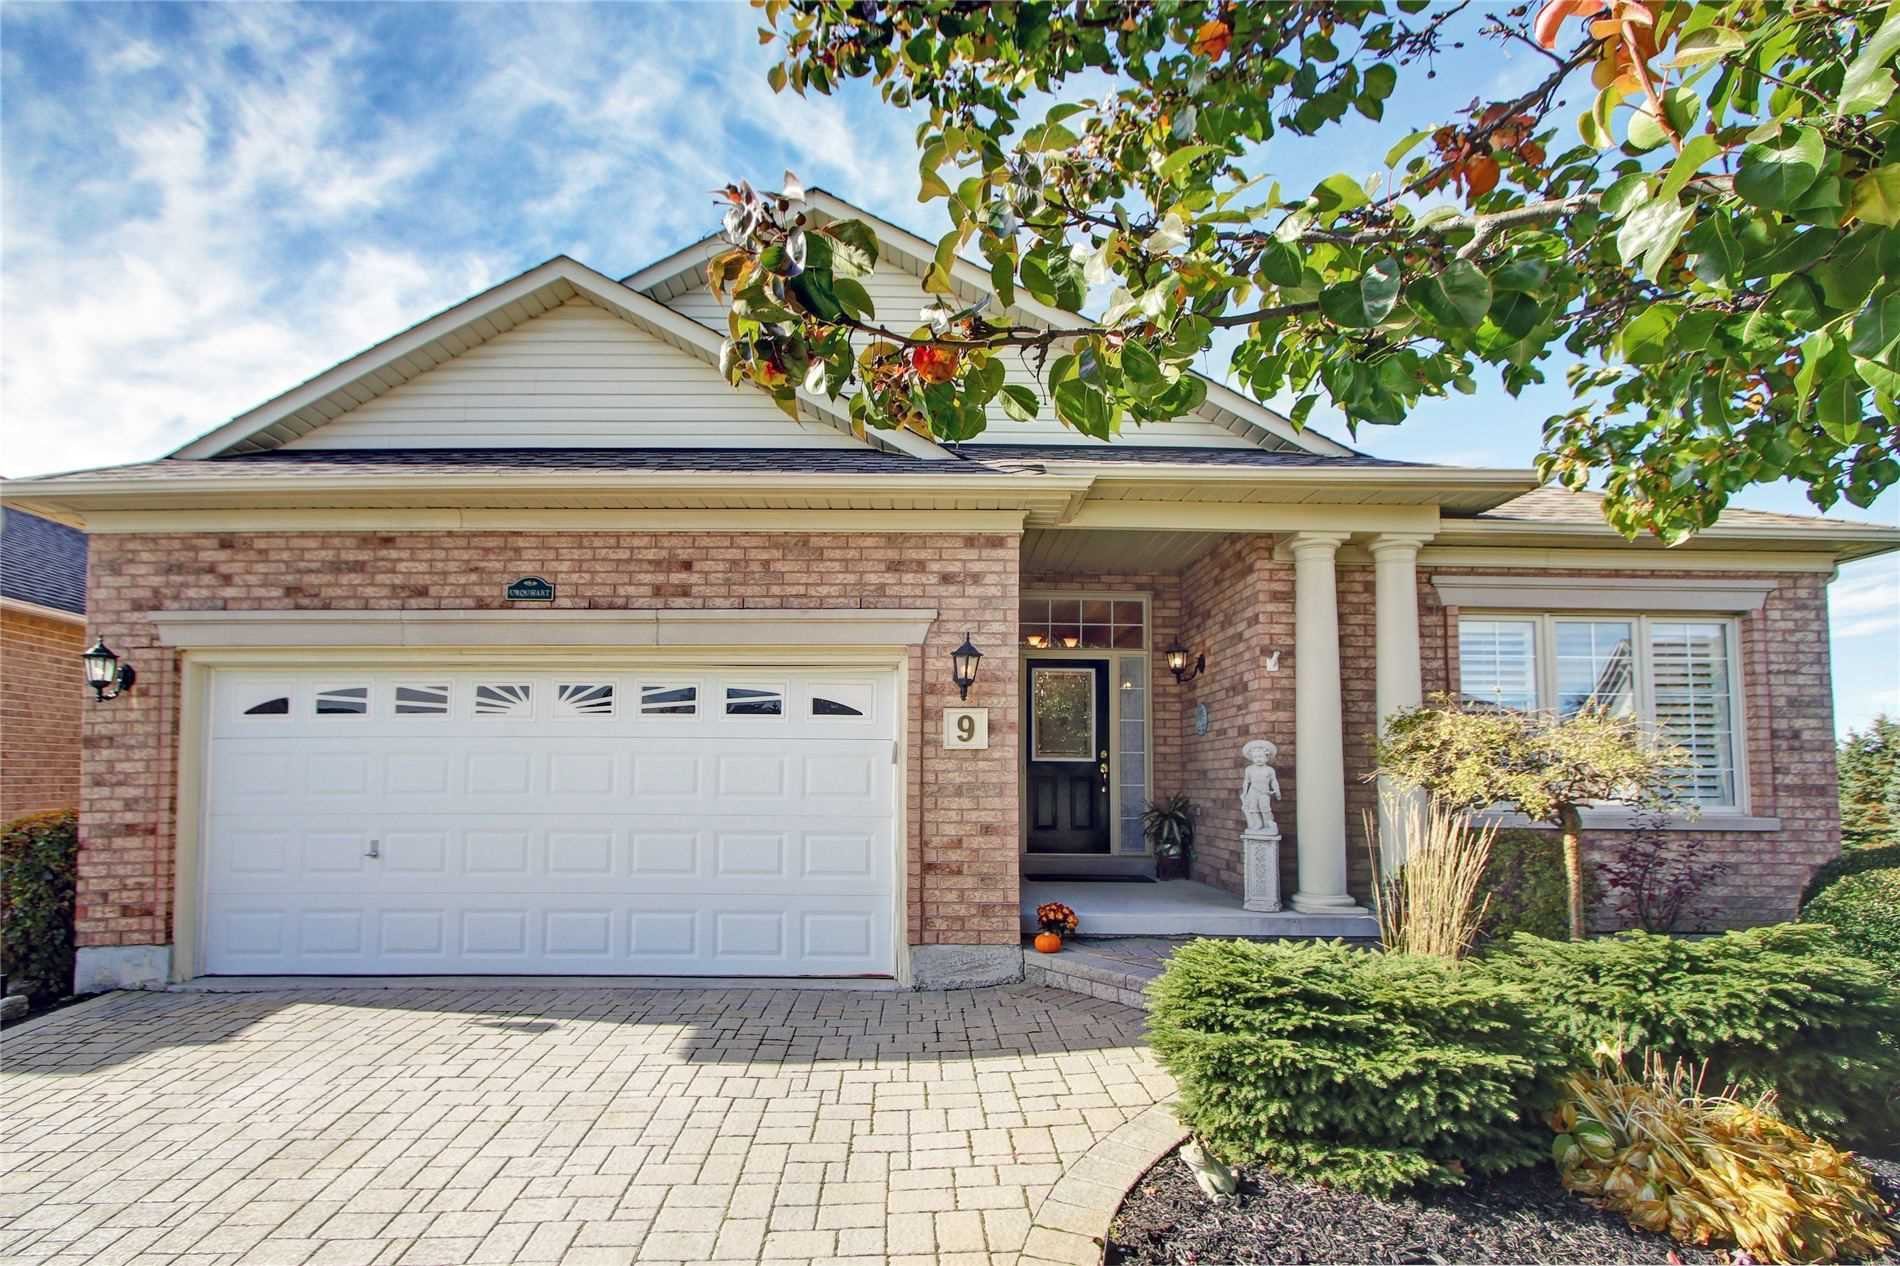 Main Photo: 9 Jack's Round in Whitchurch-Stouffville: Freehold for sale : MLS®# N4619544